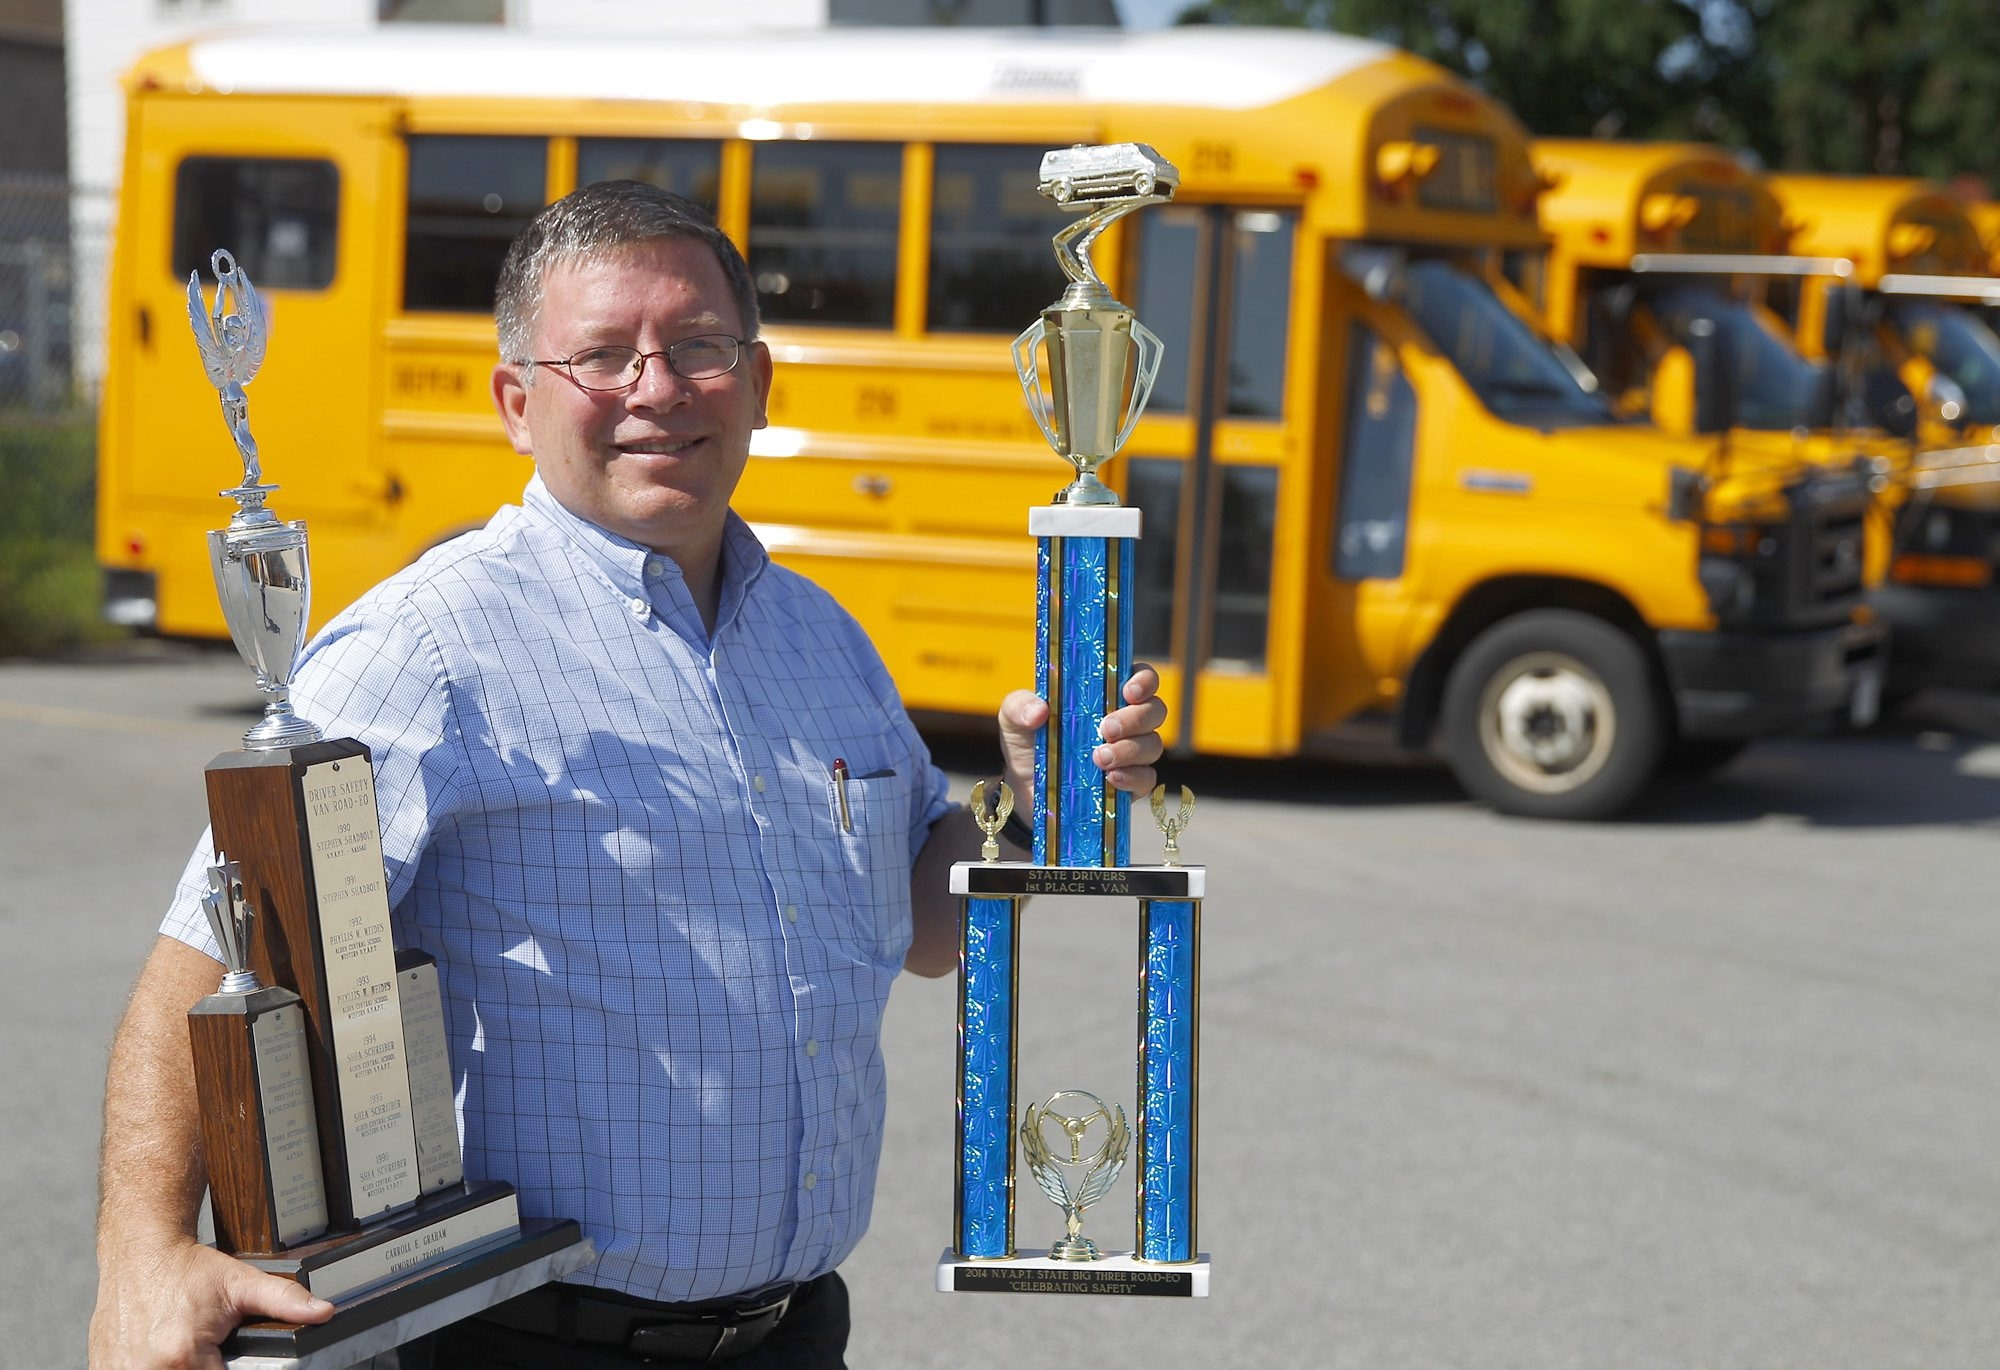 Depew Union Free School District bus driver Doug Sexton holds the first-place trophies he won for safe driving in the 2014 School Bus Safety Road-eo in Albany. Sexton, 52, of the Village of Lancaster, is also pastor of Hedstrom Memorial Baptist Church in Cheektowaga.